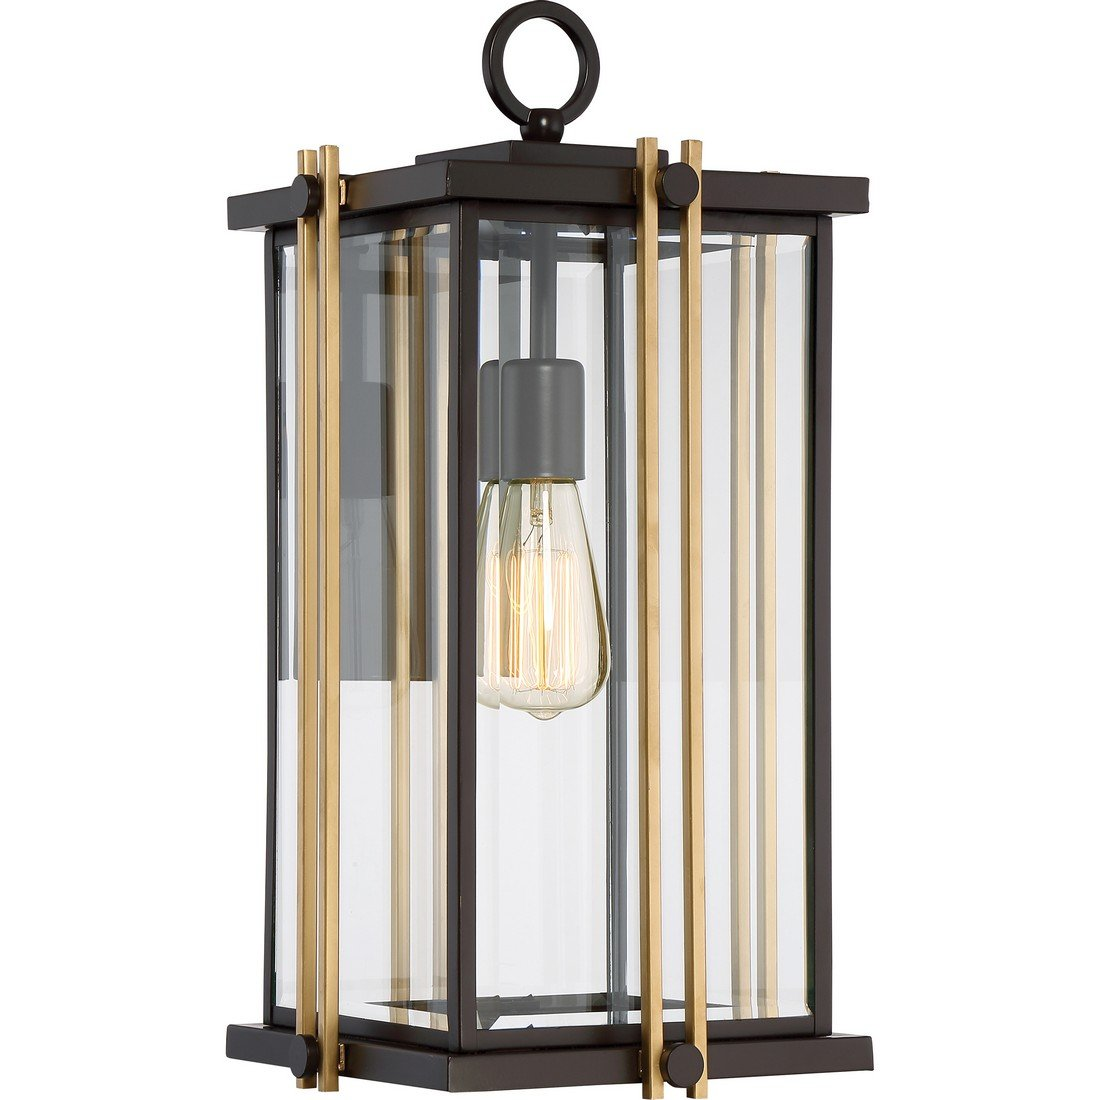 Quoizel One Light Outdoor Wall Lantern GLD8410WT, Large, Western Bronze